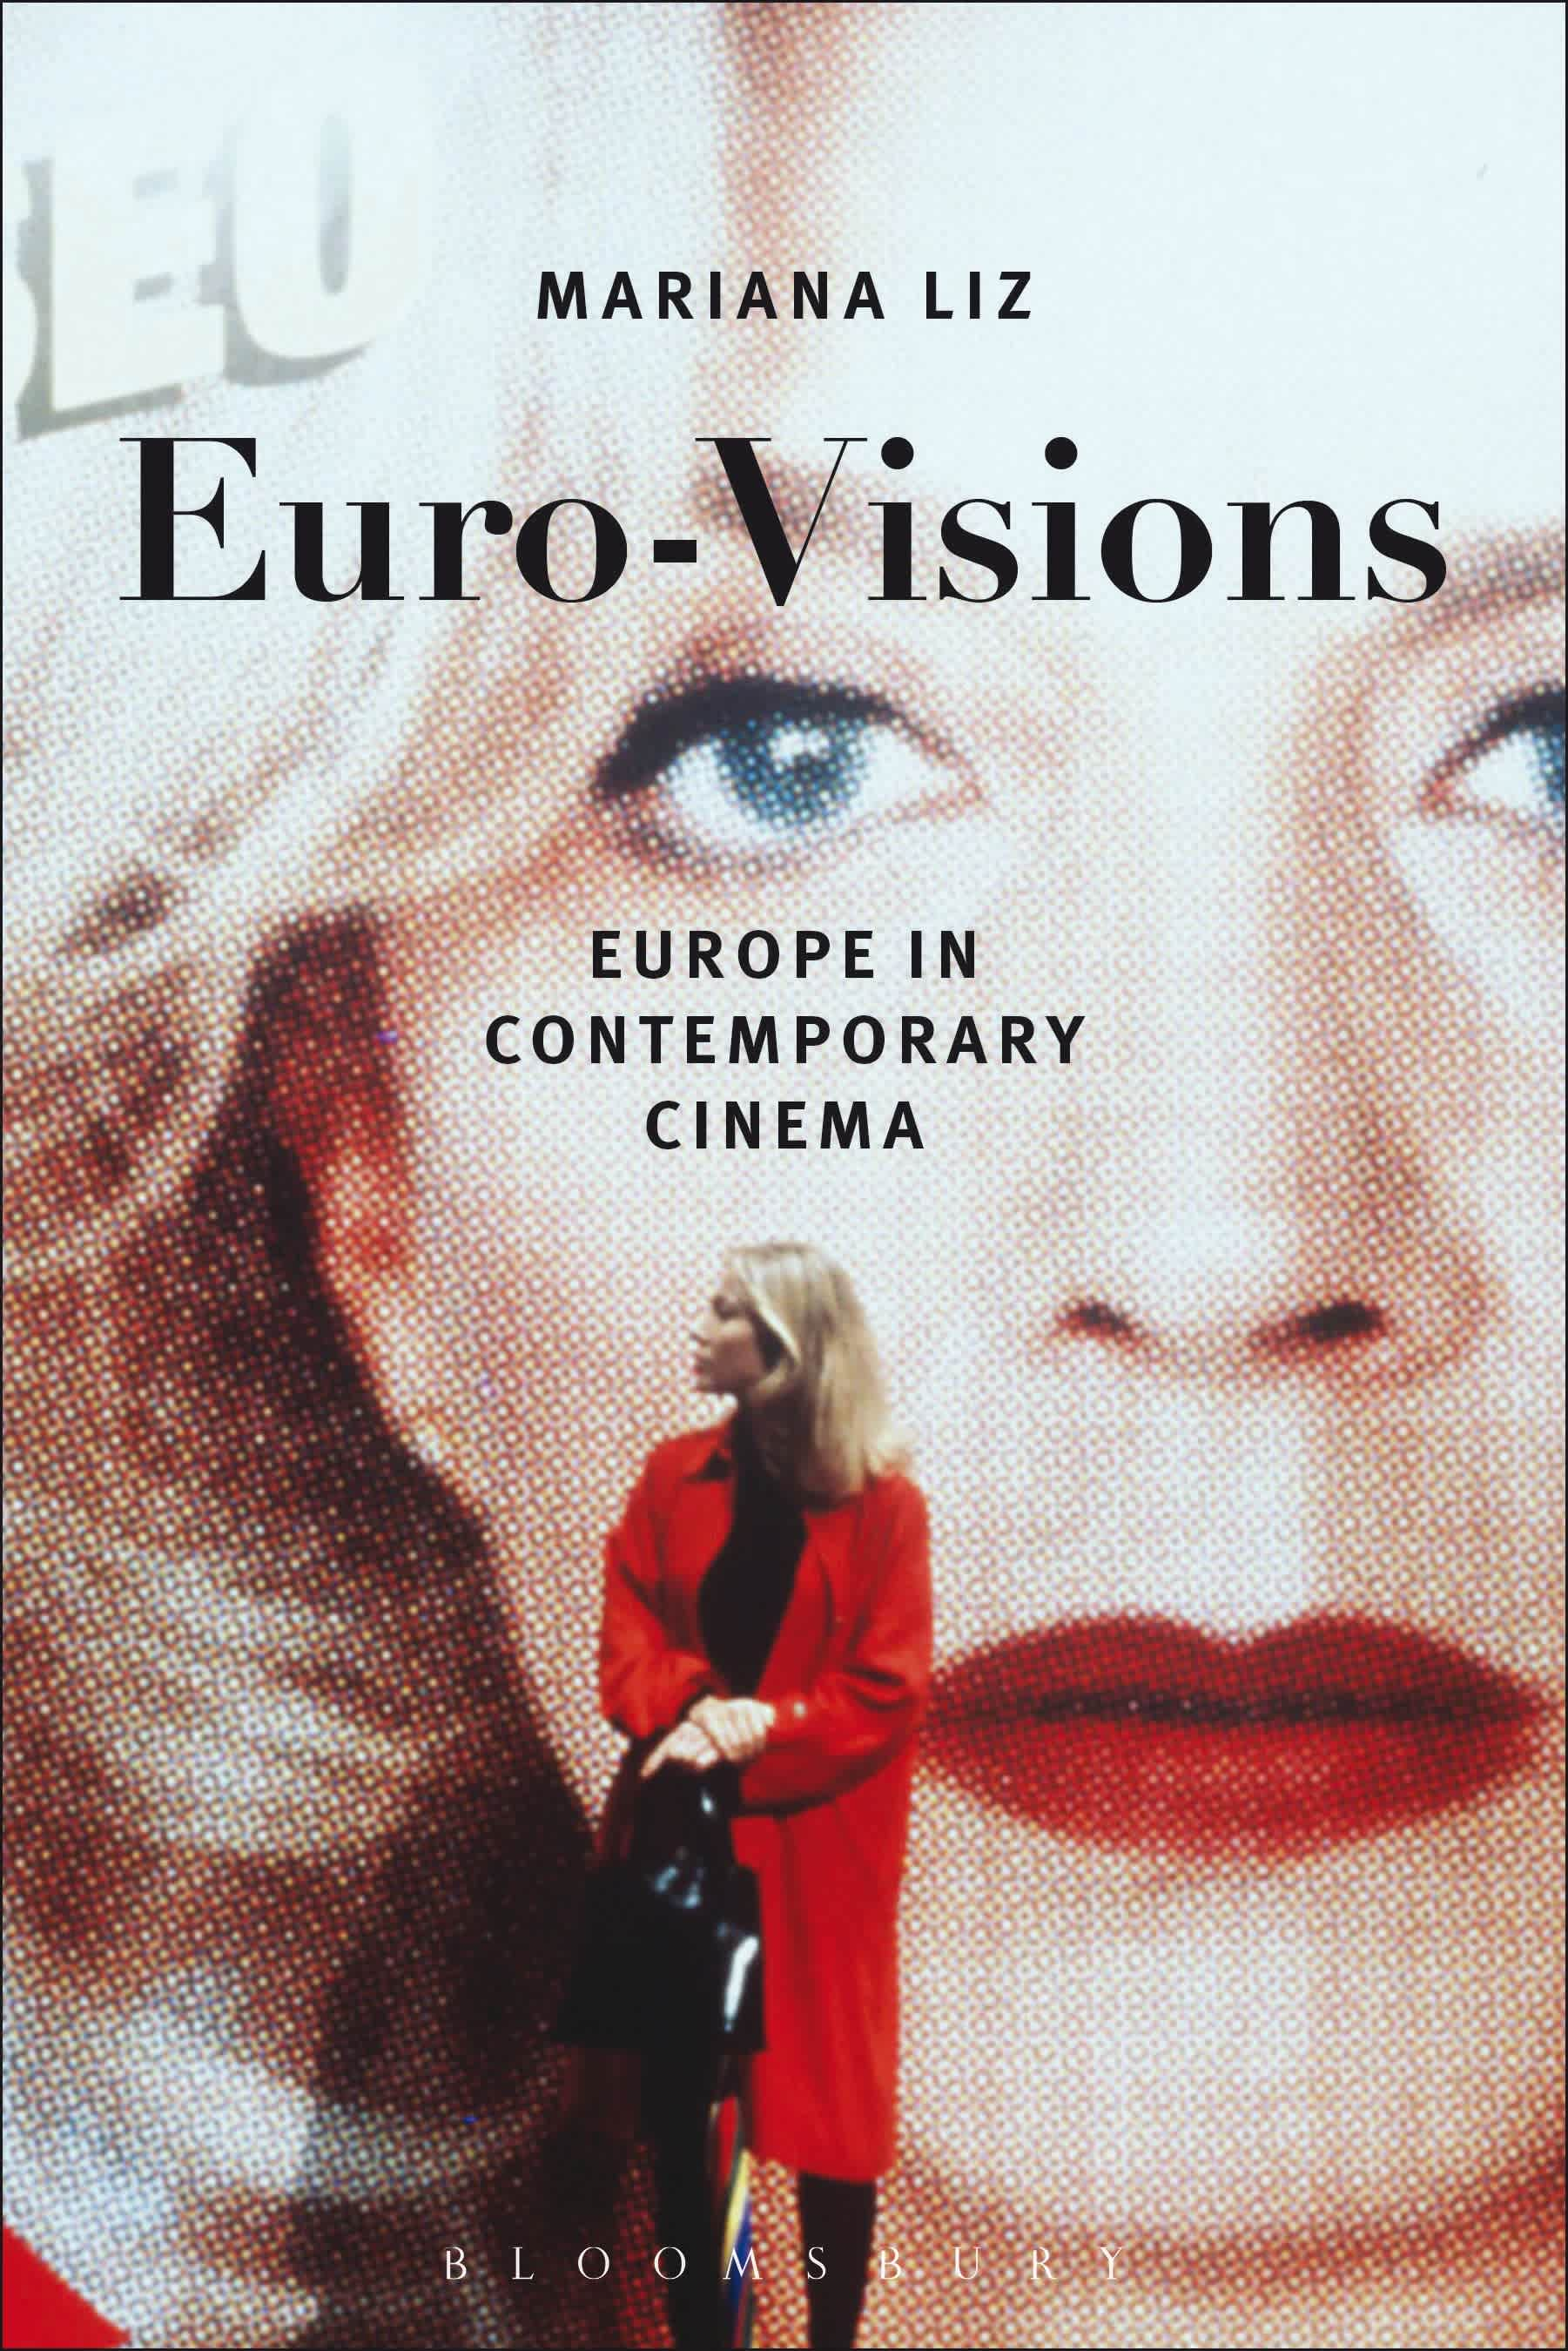 Euro-Visions: Europe in Contemporary Cinema cover image